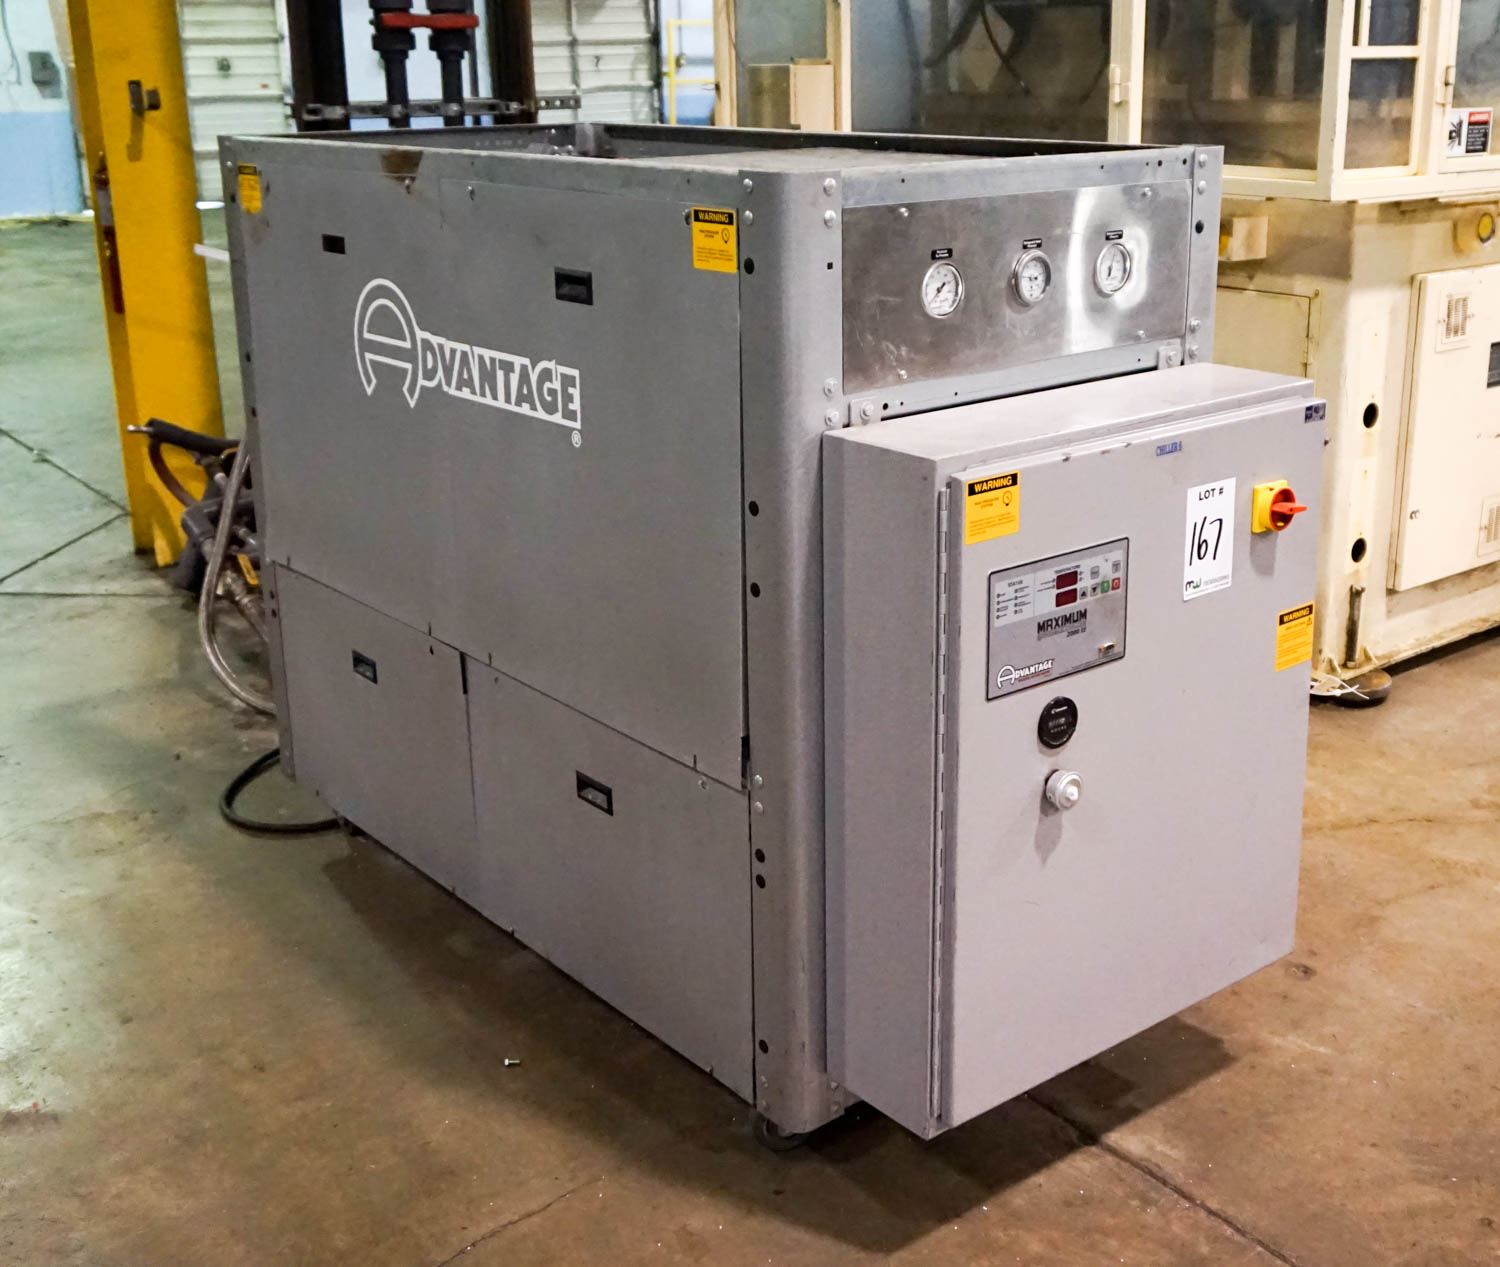 Lot 167 Advantage M1 10W Chiller: 10 Ton 2 HP 26 GPM Flow 37.2 kw  #C28B09